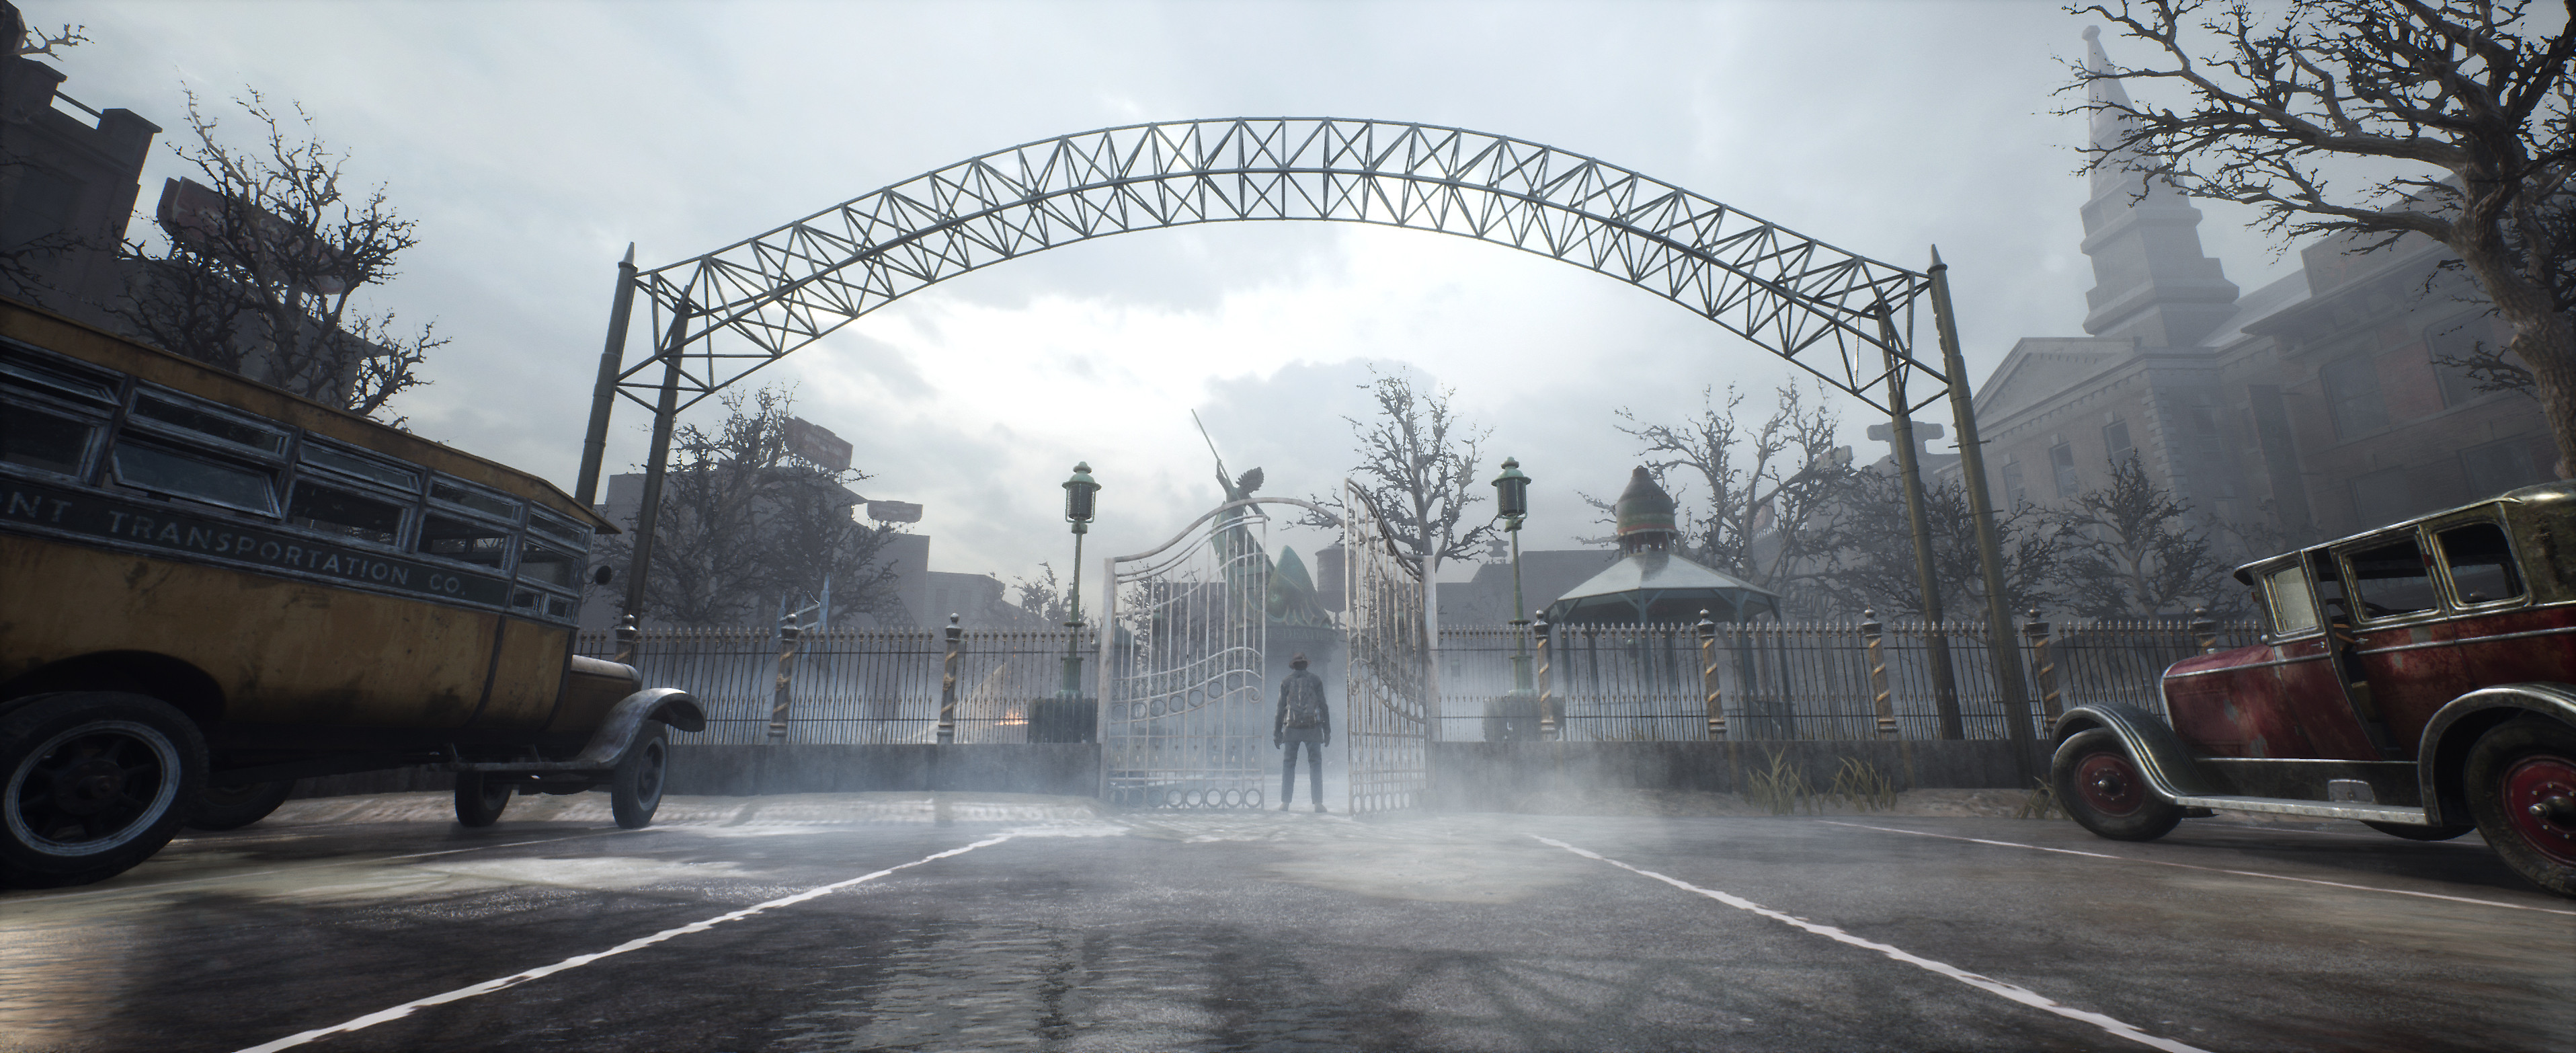 The Sinking City - Investigative Adventure Game Set In An Open World - Screenshot